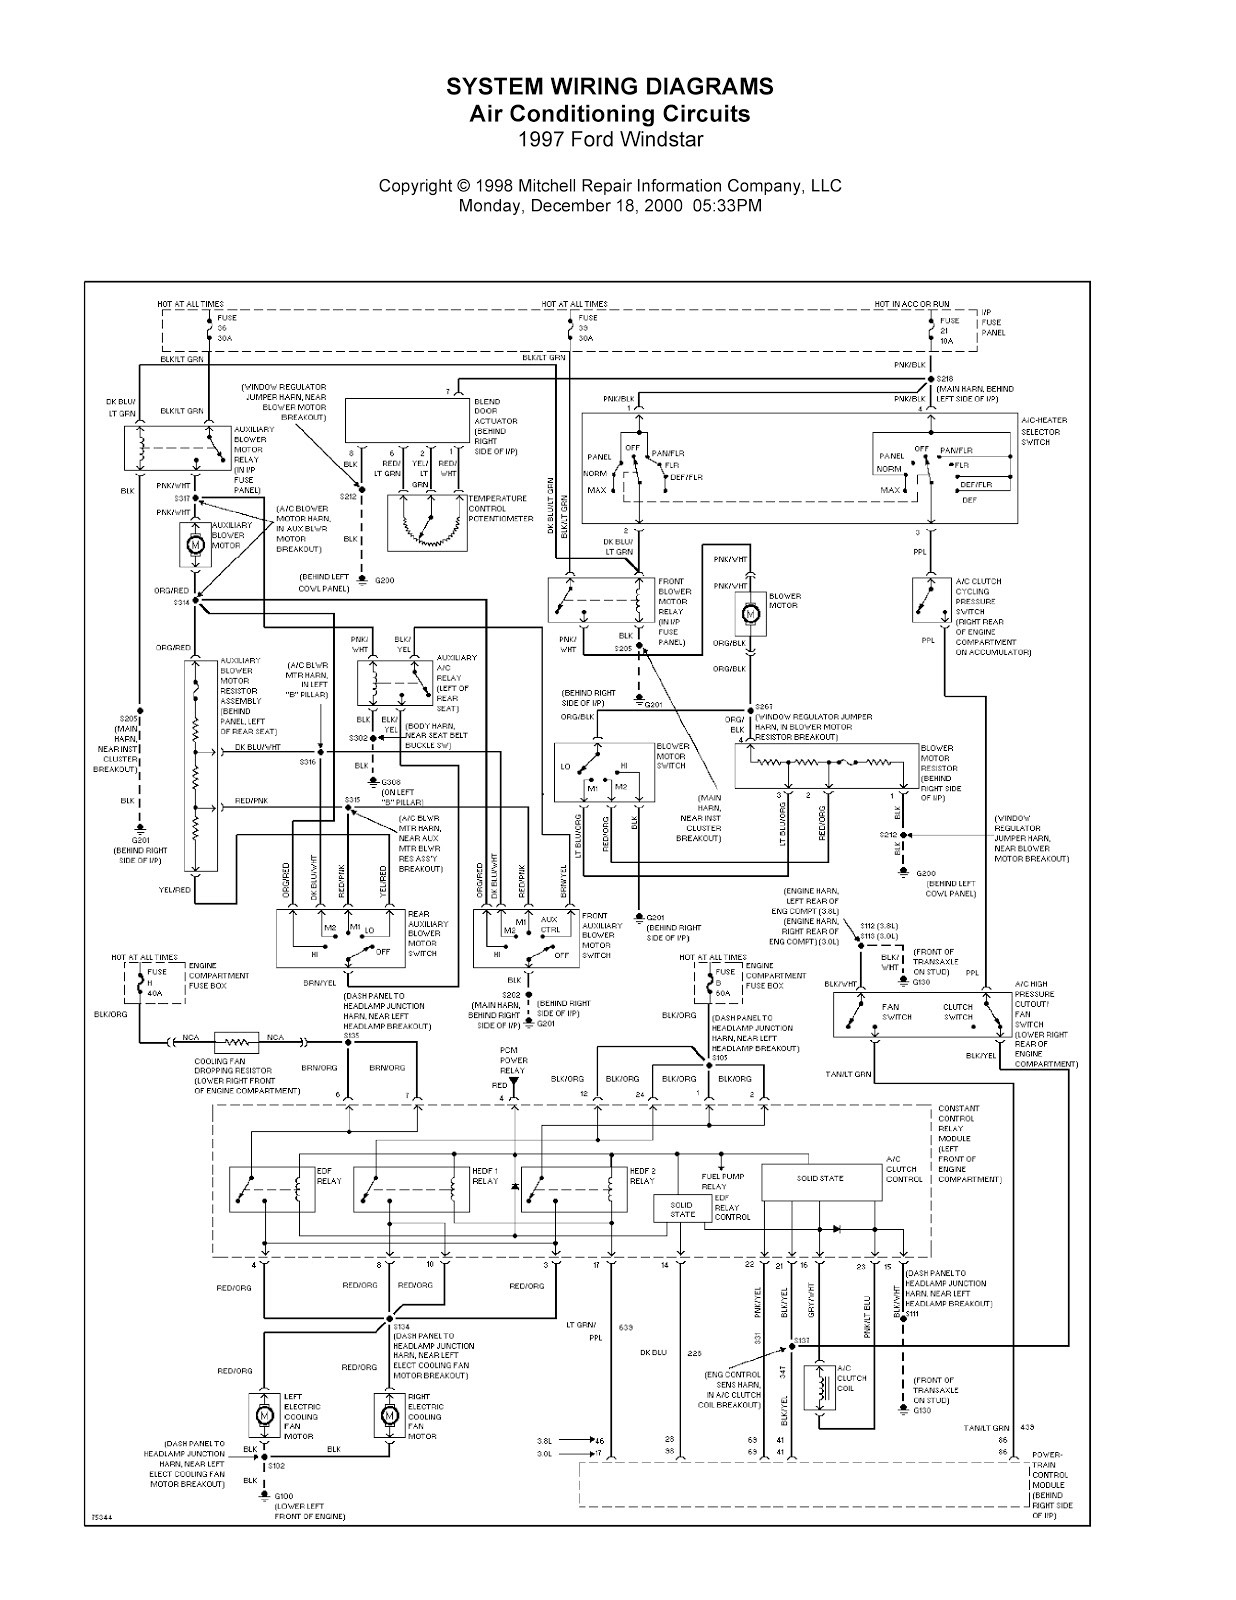 Ford Escort Engine Diagram Awesome 1997 ford Escort Wiring Diagram S Everything You Need Of Ford Escort Engine Diagram